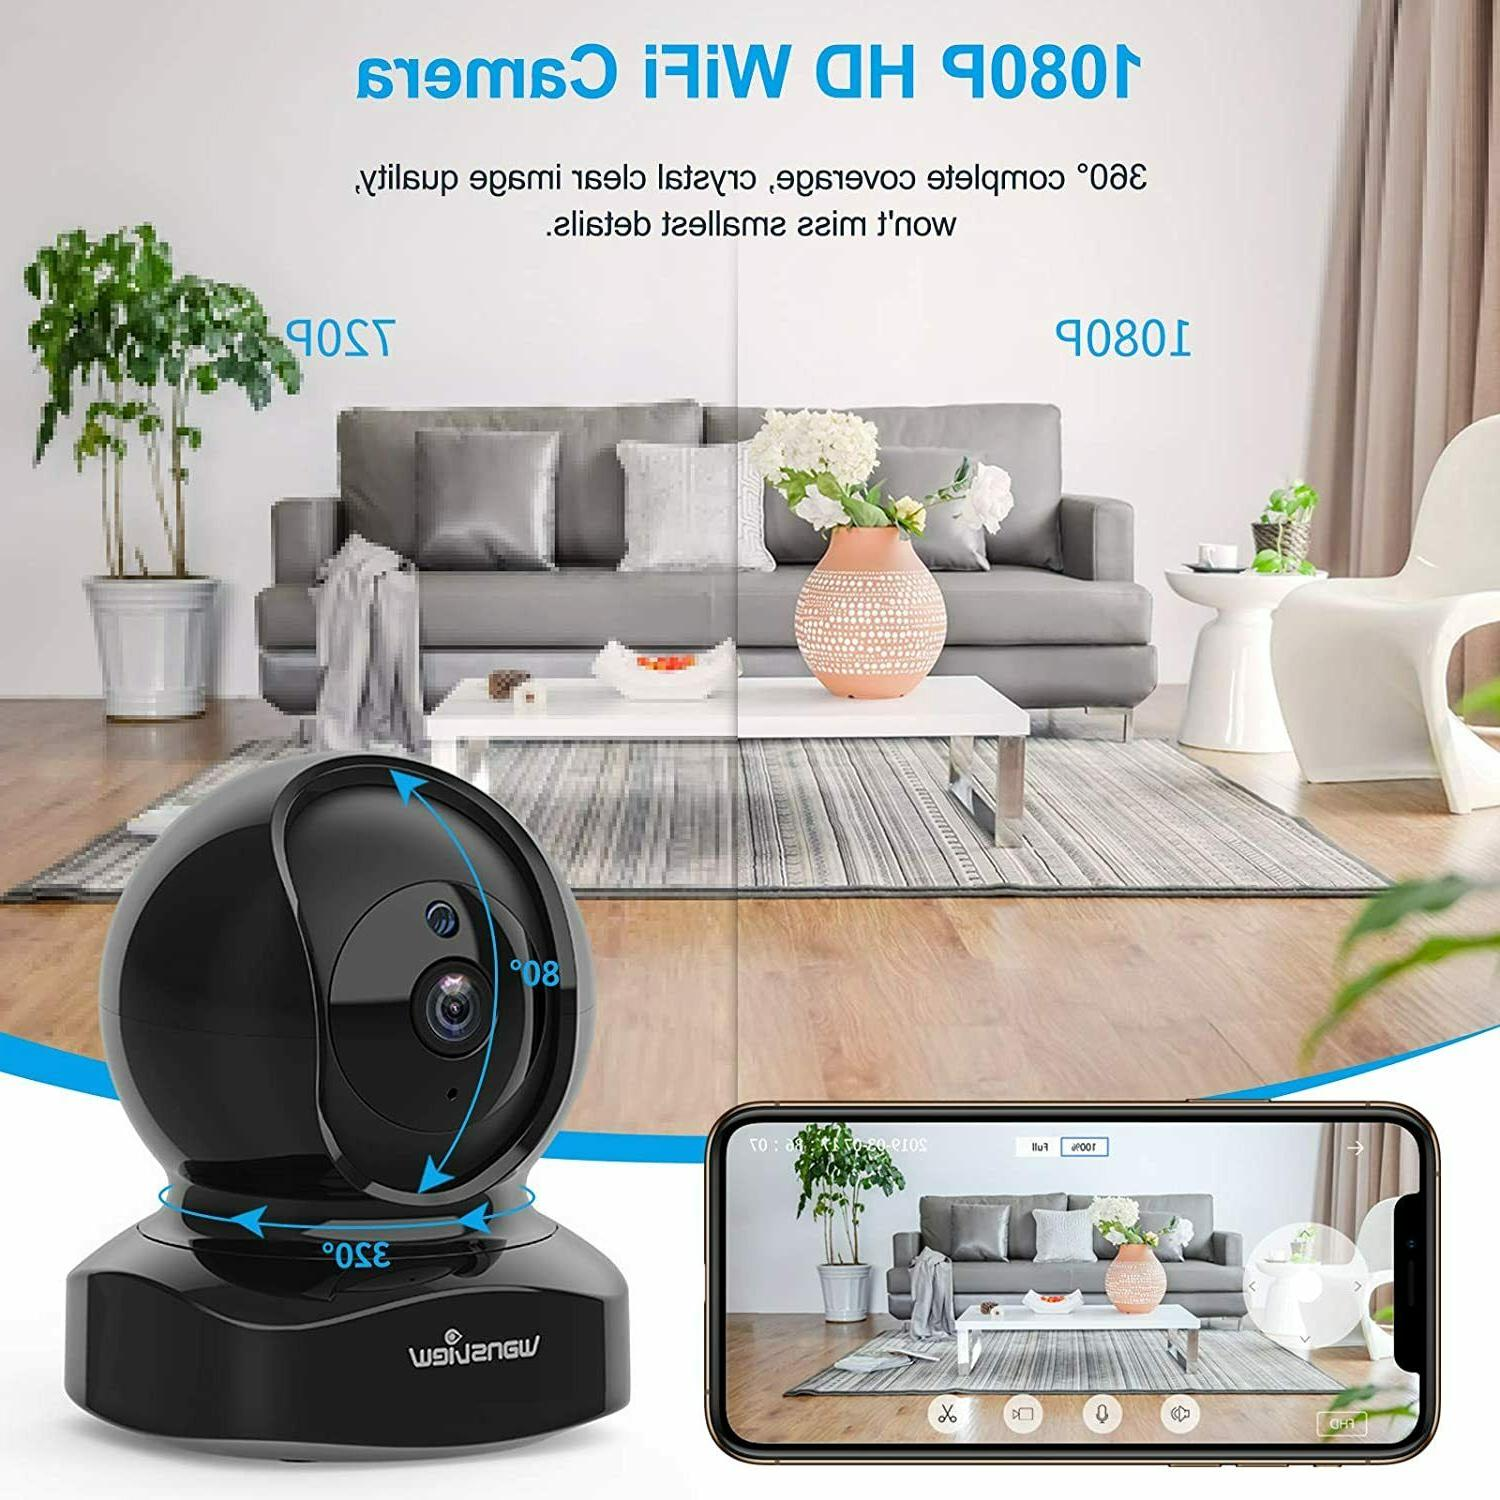 Camera Wireless Security Hd 1080p Wansview Cameras Black C